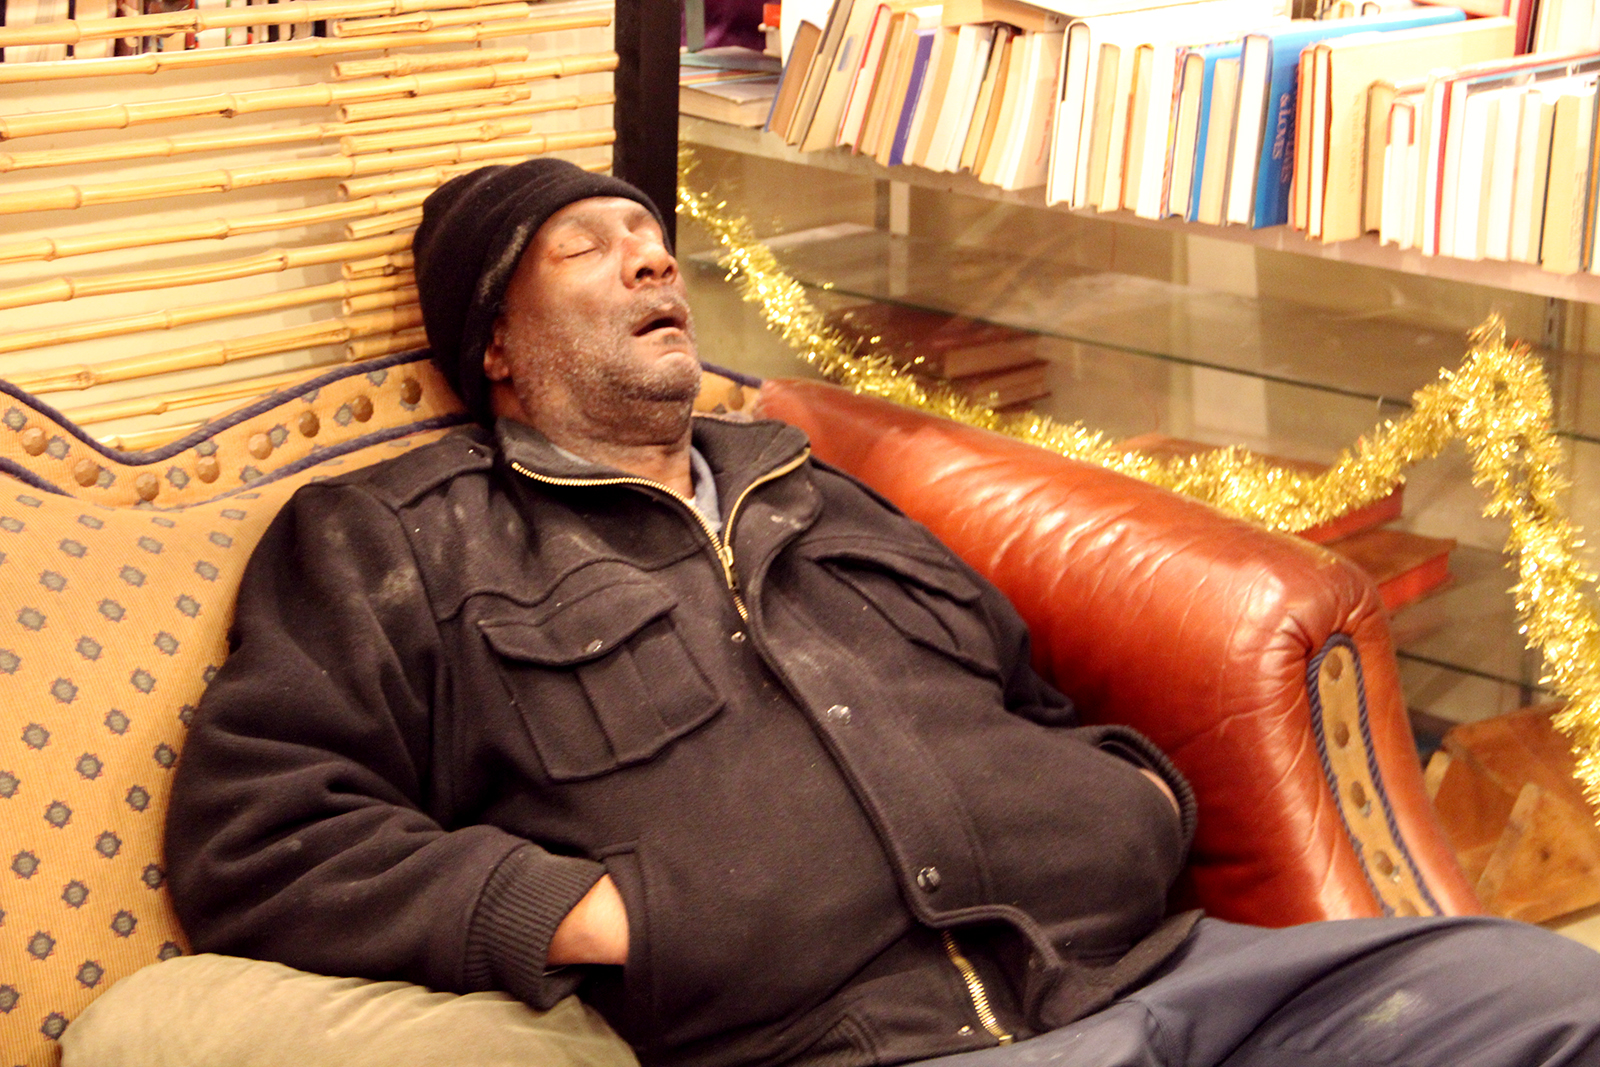 A man takes a nap at Adobe Bookshop. Photo by Molly Oleson